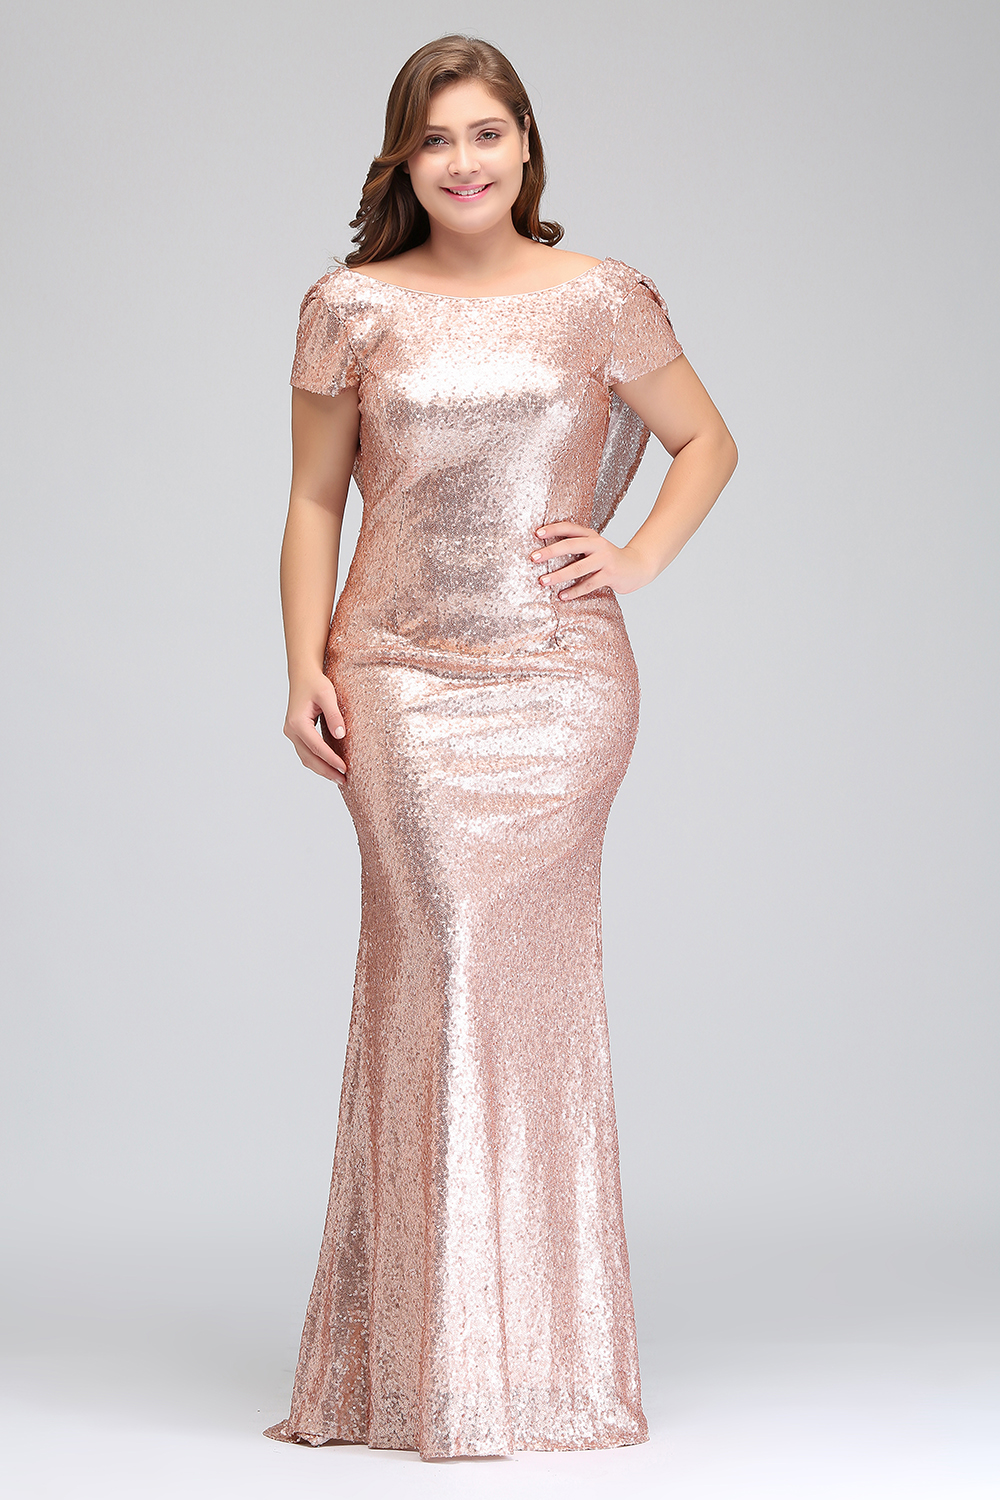 0891b0400706d US $62.99 37% OFF|Plus size Evening Dress Long Sparkling 2019 New Women  Elegant Sequin Mermaid Maxi Evening Party Gown Celebrity Formal Dress-in ...